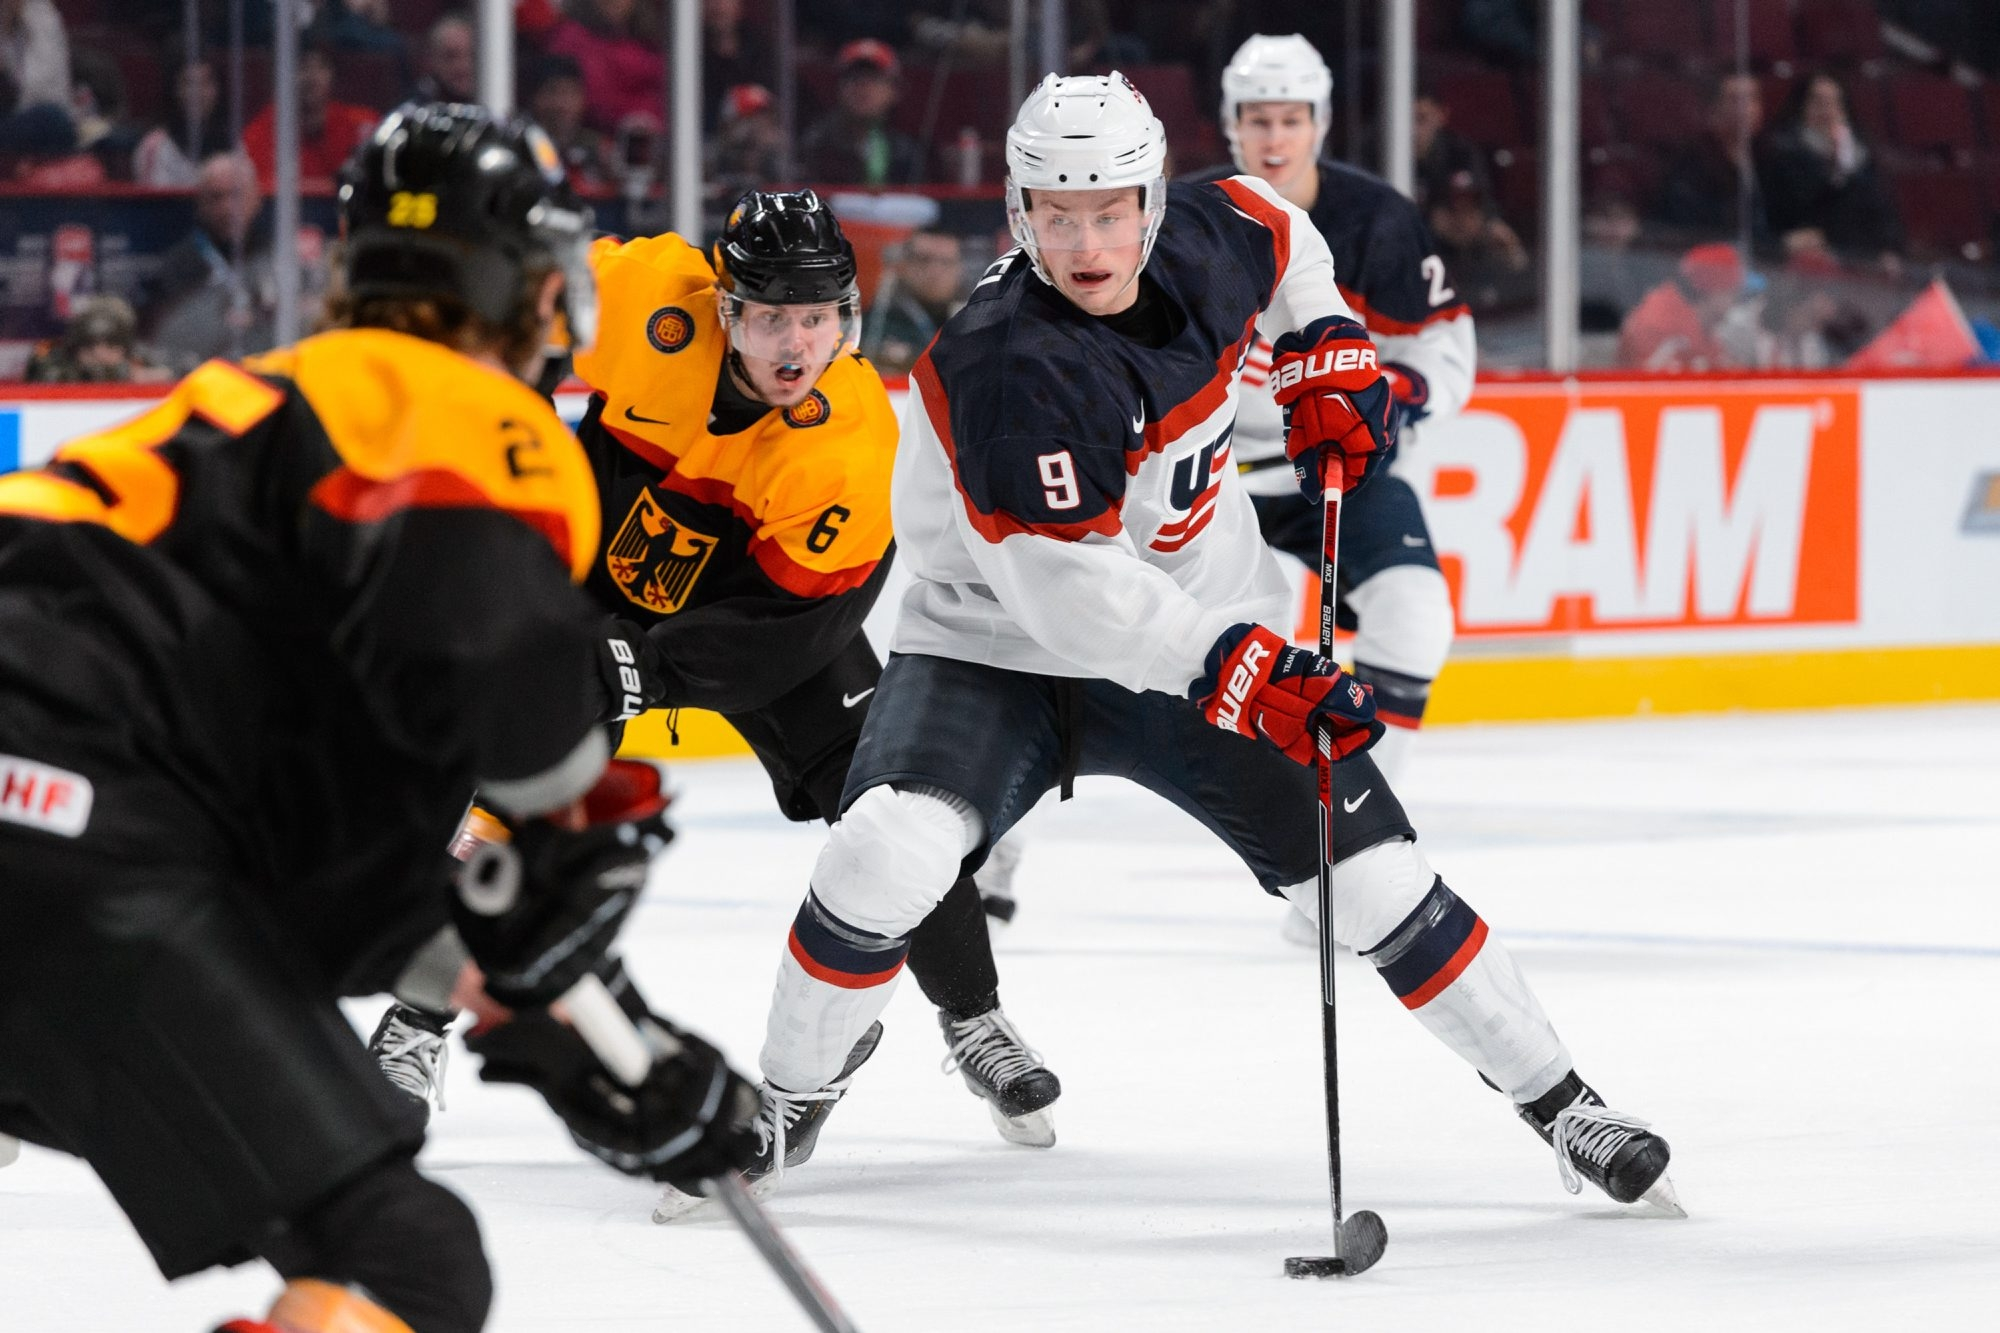 Jack Eichel plays the puck during the 2015 IIHF World Junior Hockey Championships.